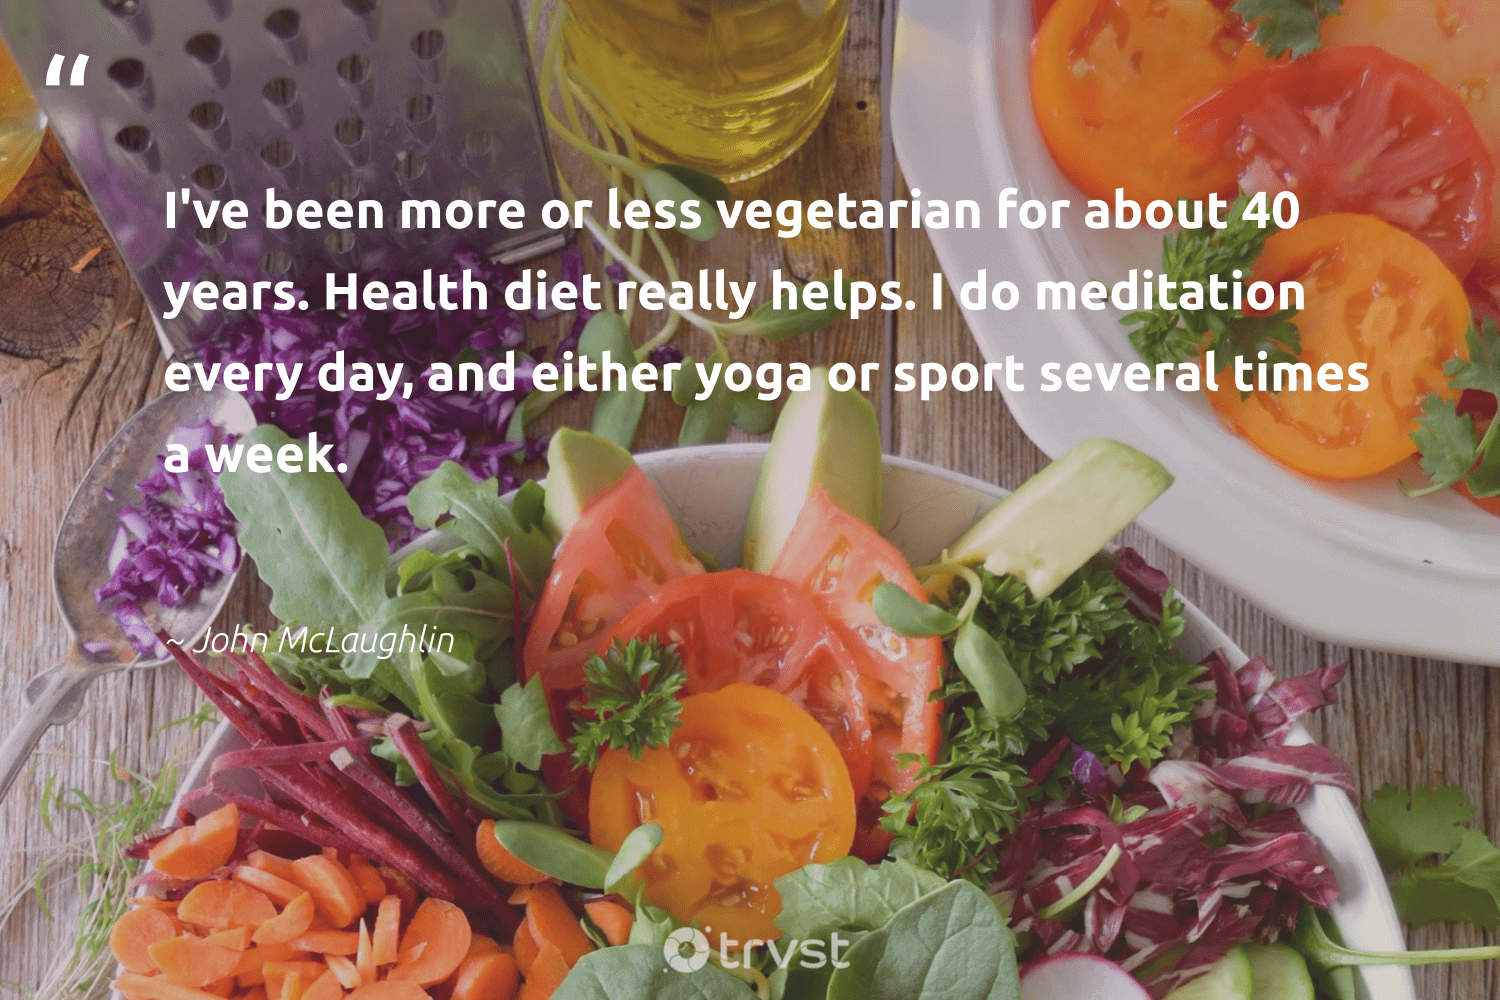 """""""I've been more or less vegetarian for about 40 years. Health diet really helps. I do meditation every day, and either yoga or sport several times a week.""""  - John McLaughlin #trvst #quotes #health #yoga #meditation #vegetarian #growthmindset #gogreen #nevergiveup #socialimpact #entrepreneurmindset #greenliving"""